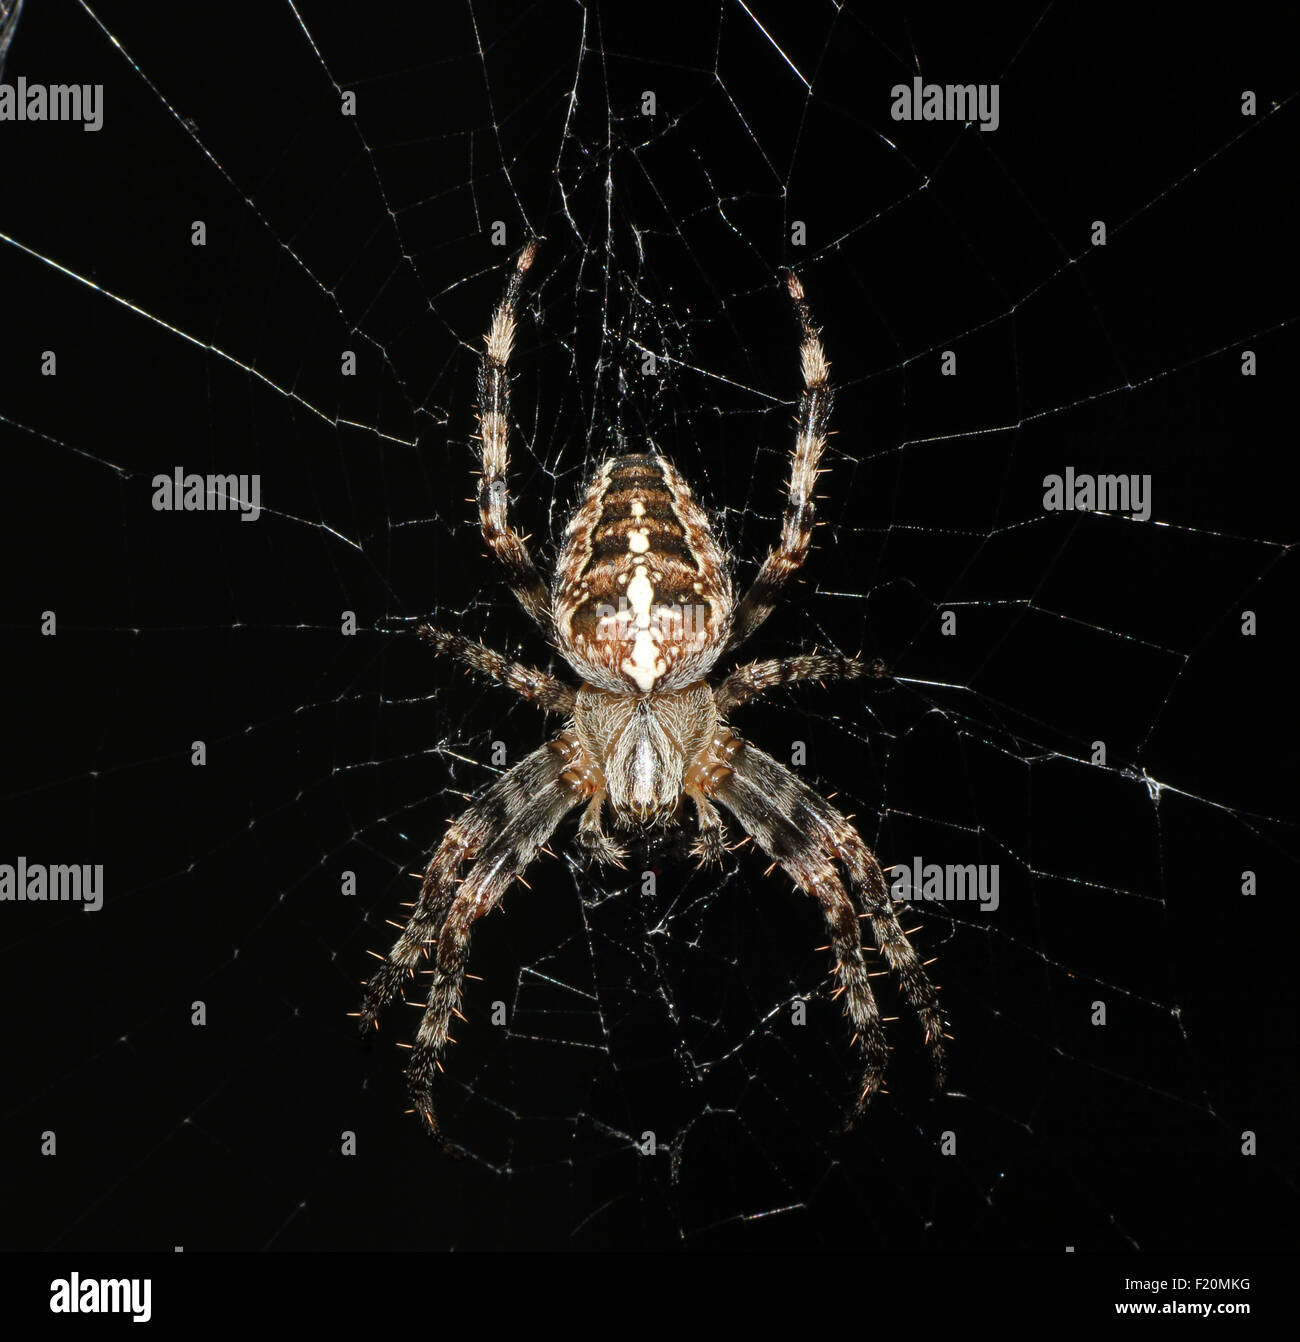 Spooky Halloween spider lying in wait on its web at night time .Close up macro image . - Stock Image